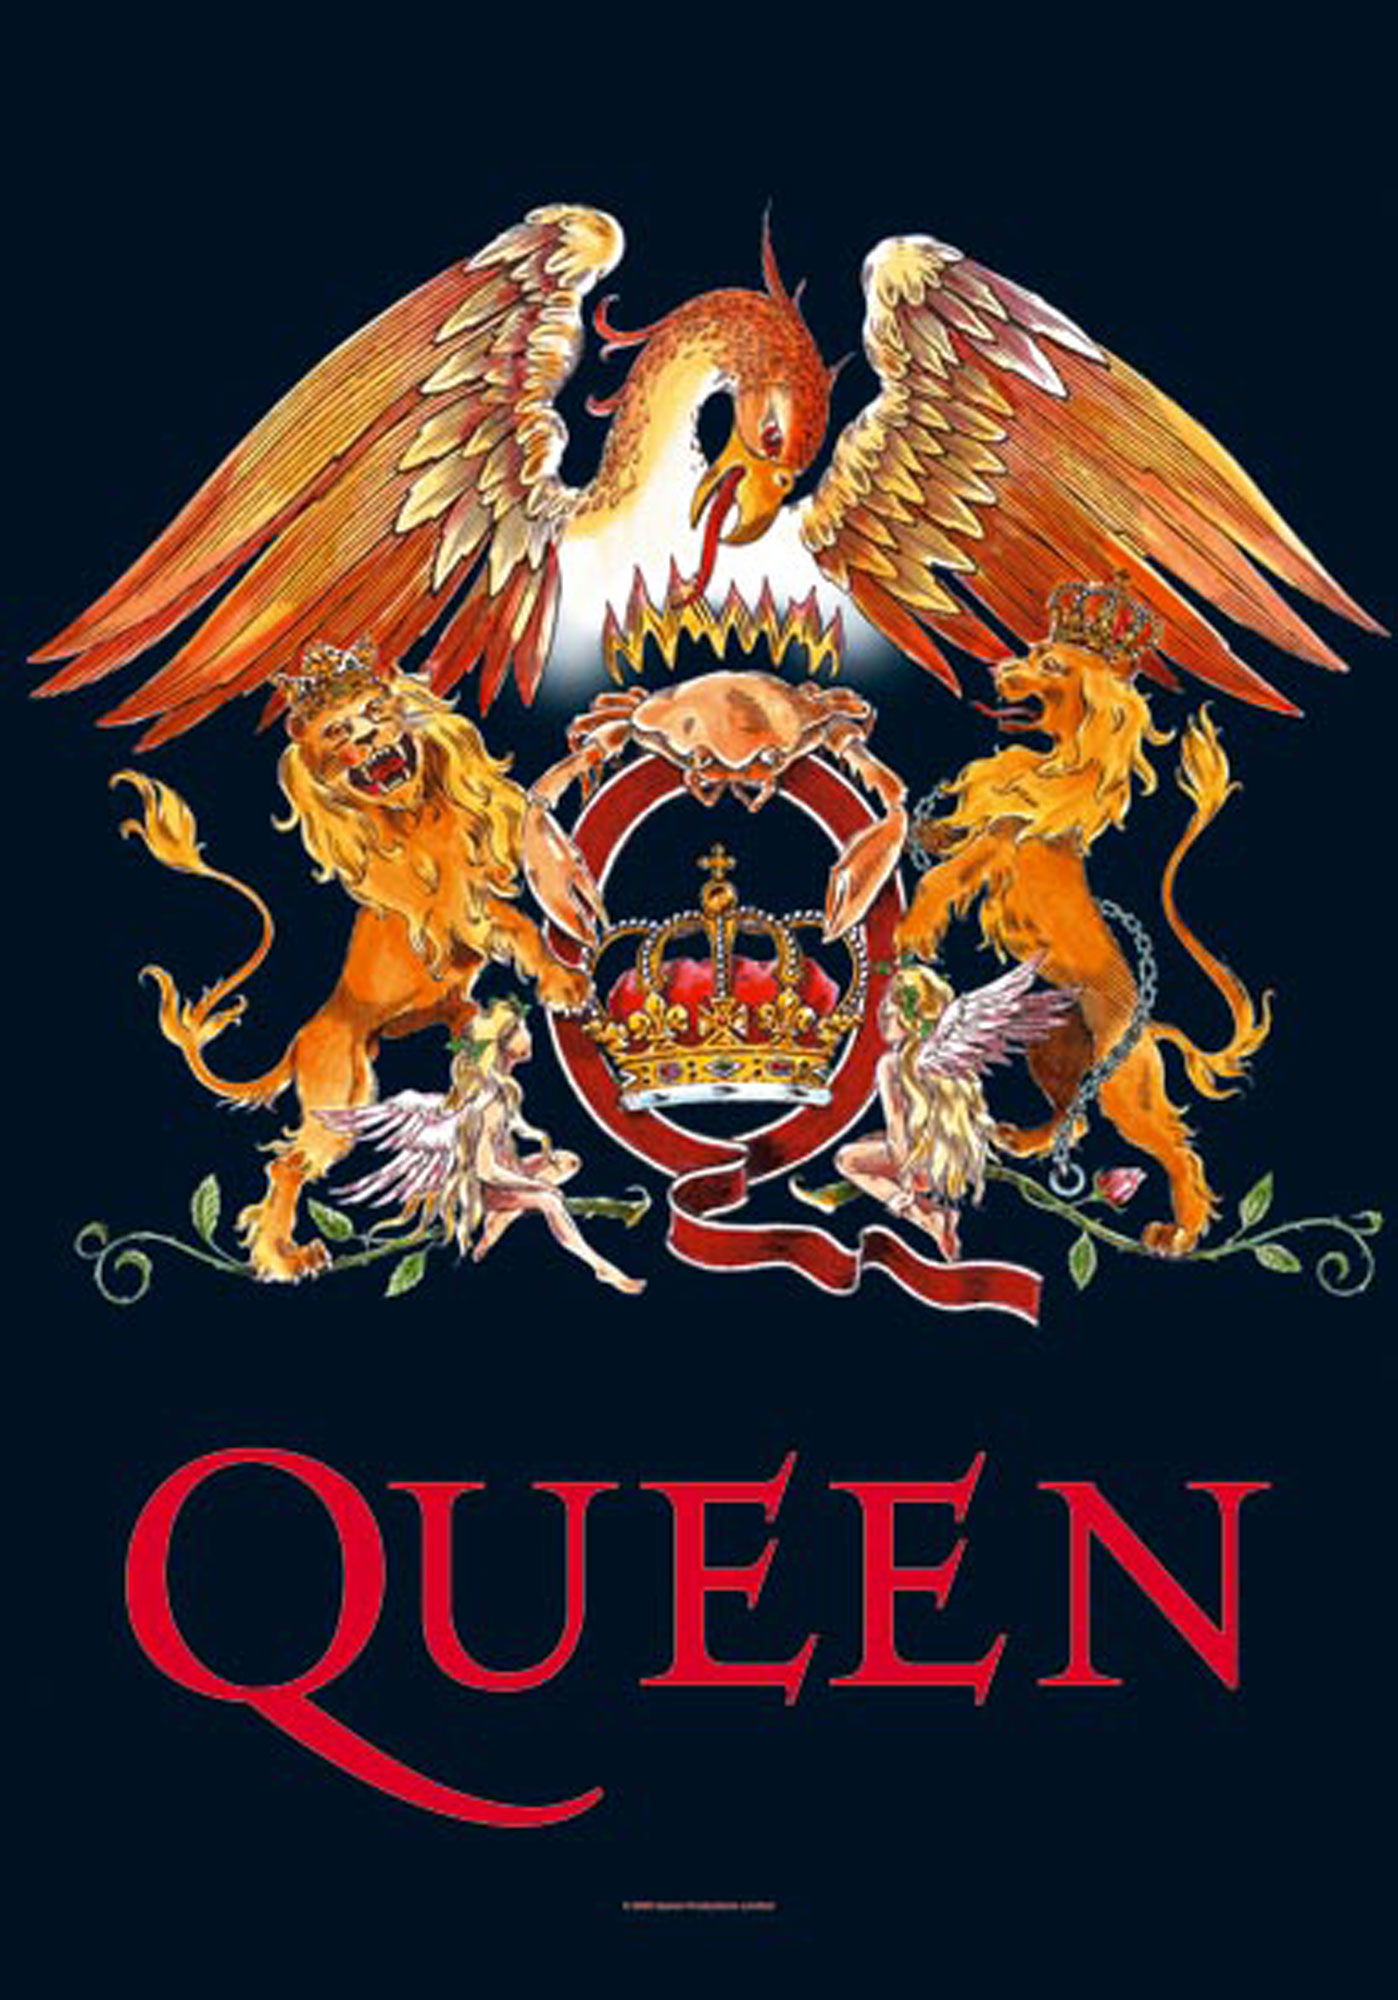 Queen - Posterflagge - Crest